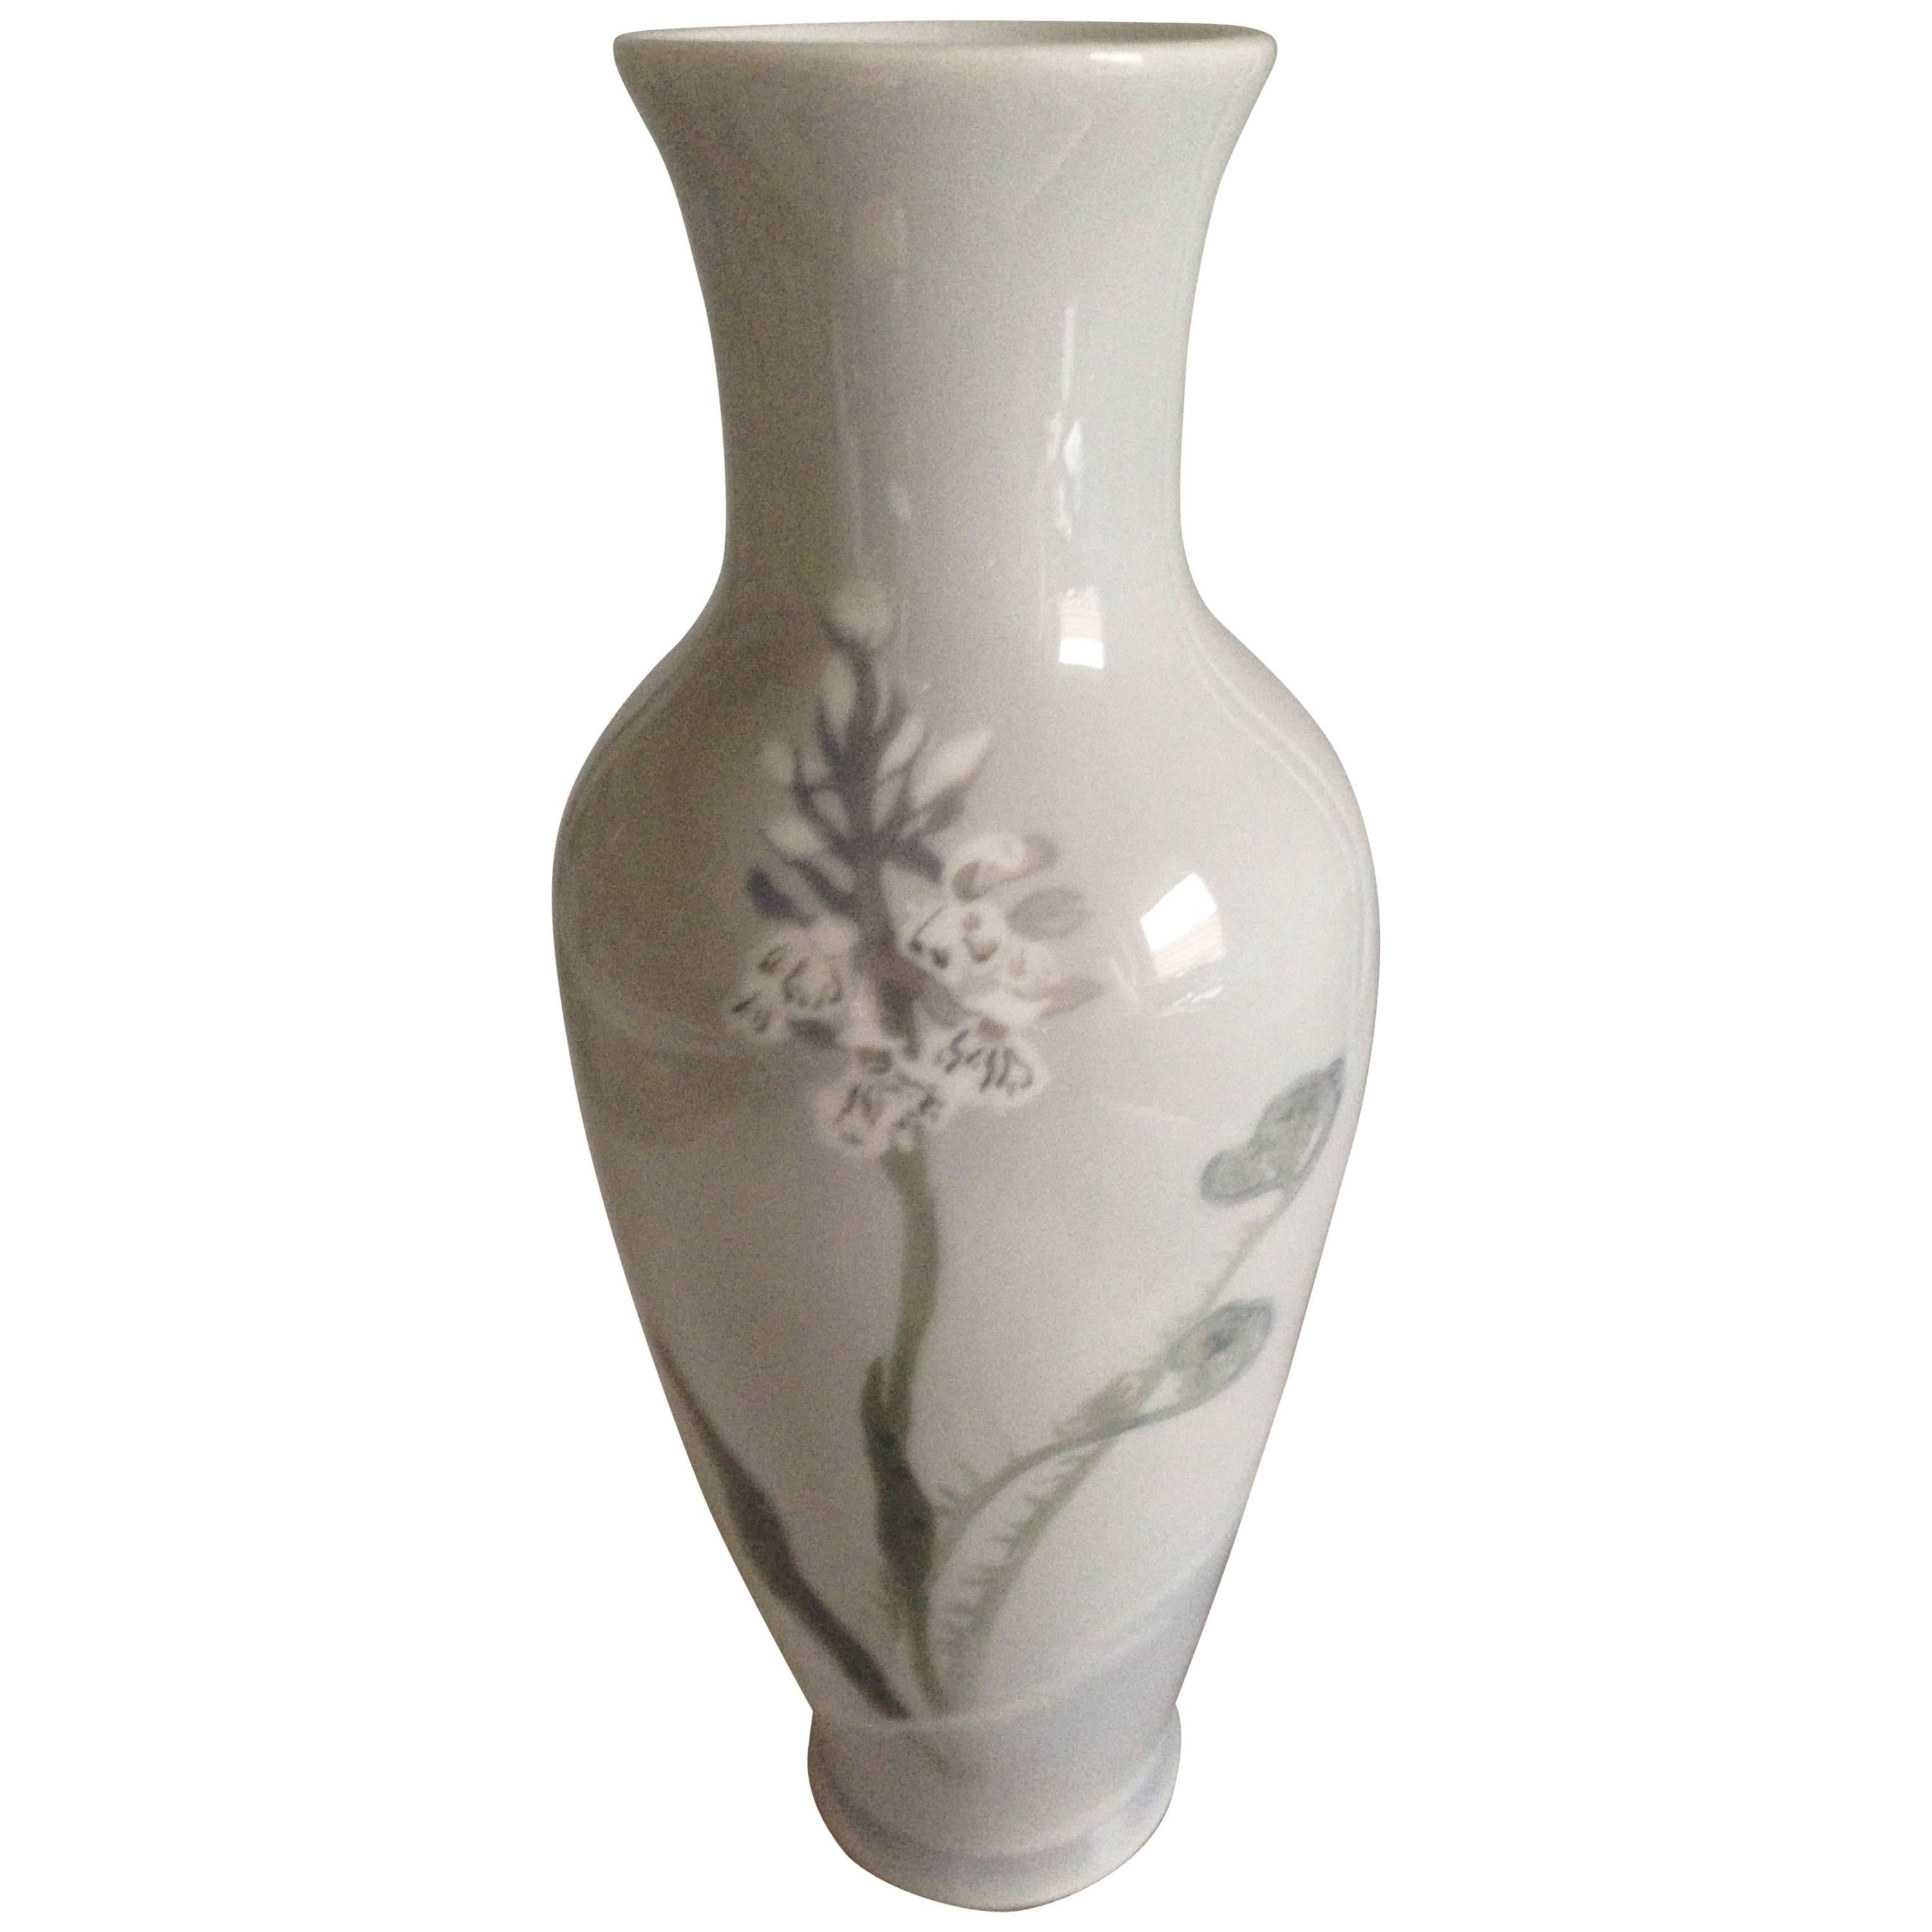 Royal Copenhagen Unique Art Nouveau Vase by Marianne Host, 1896